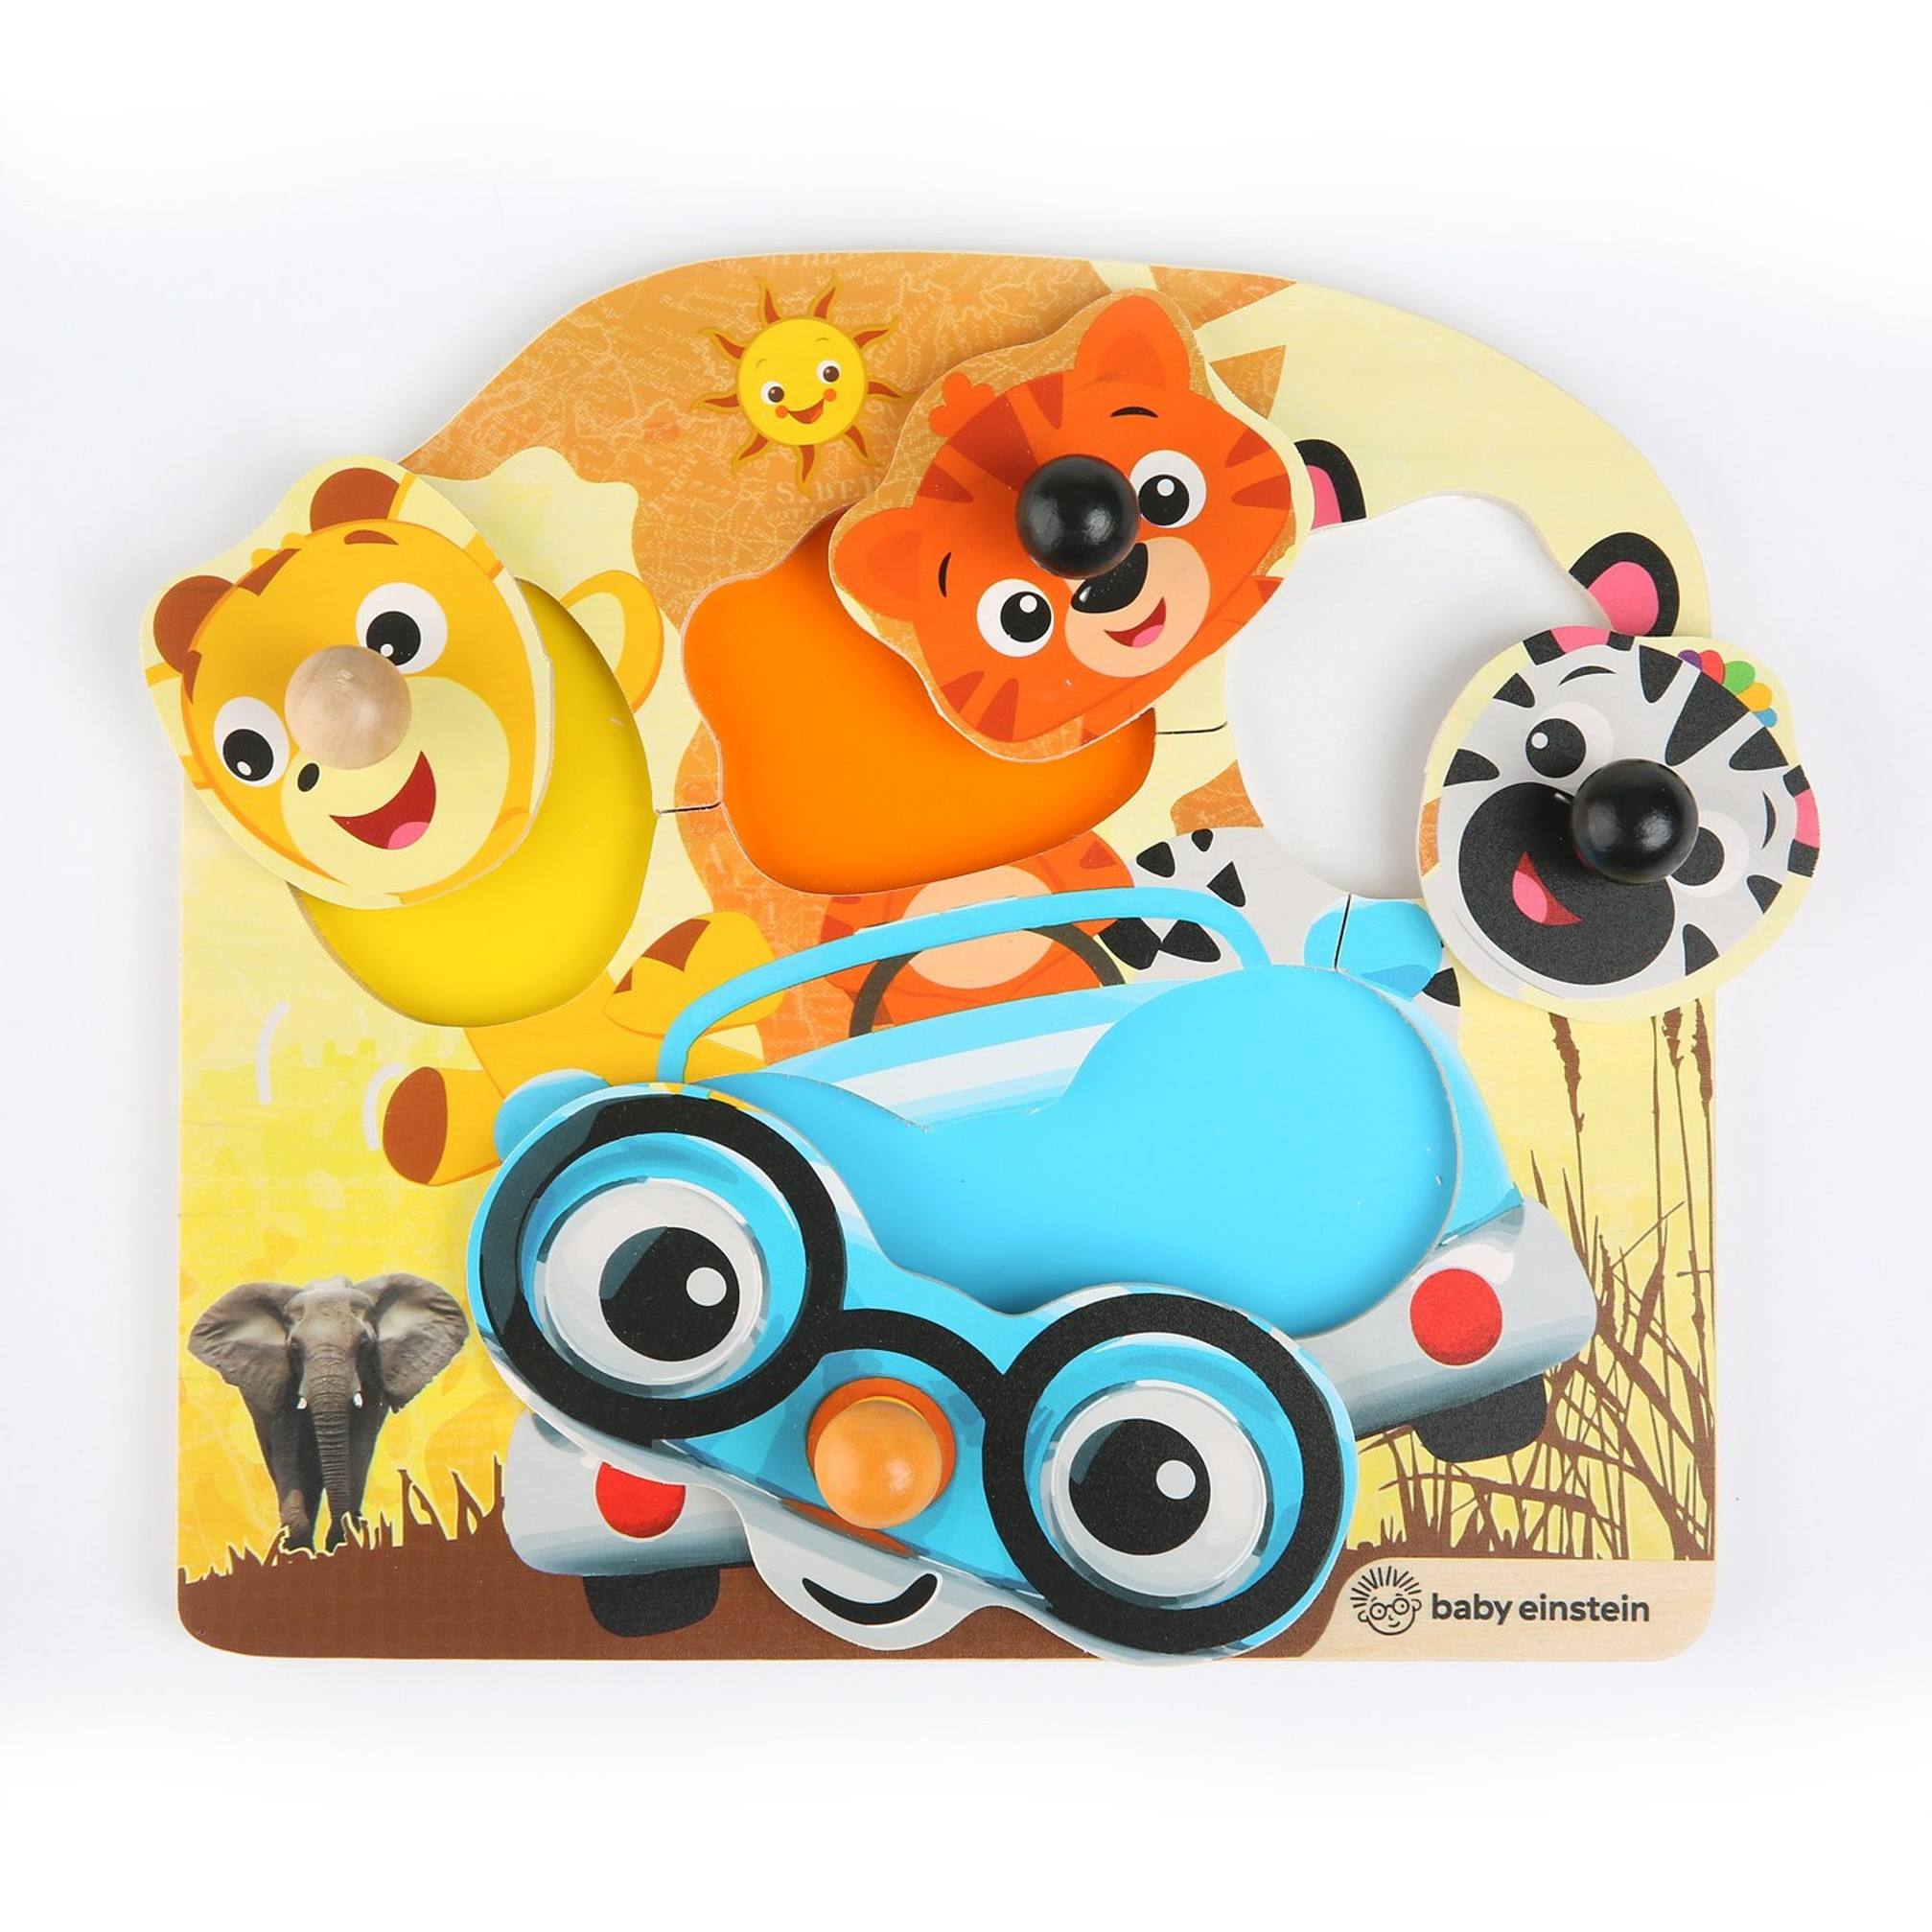 BABY EINSTEIN Hračka drevená puzzle Friendy Safari Faces HAPE 12m